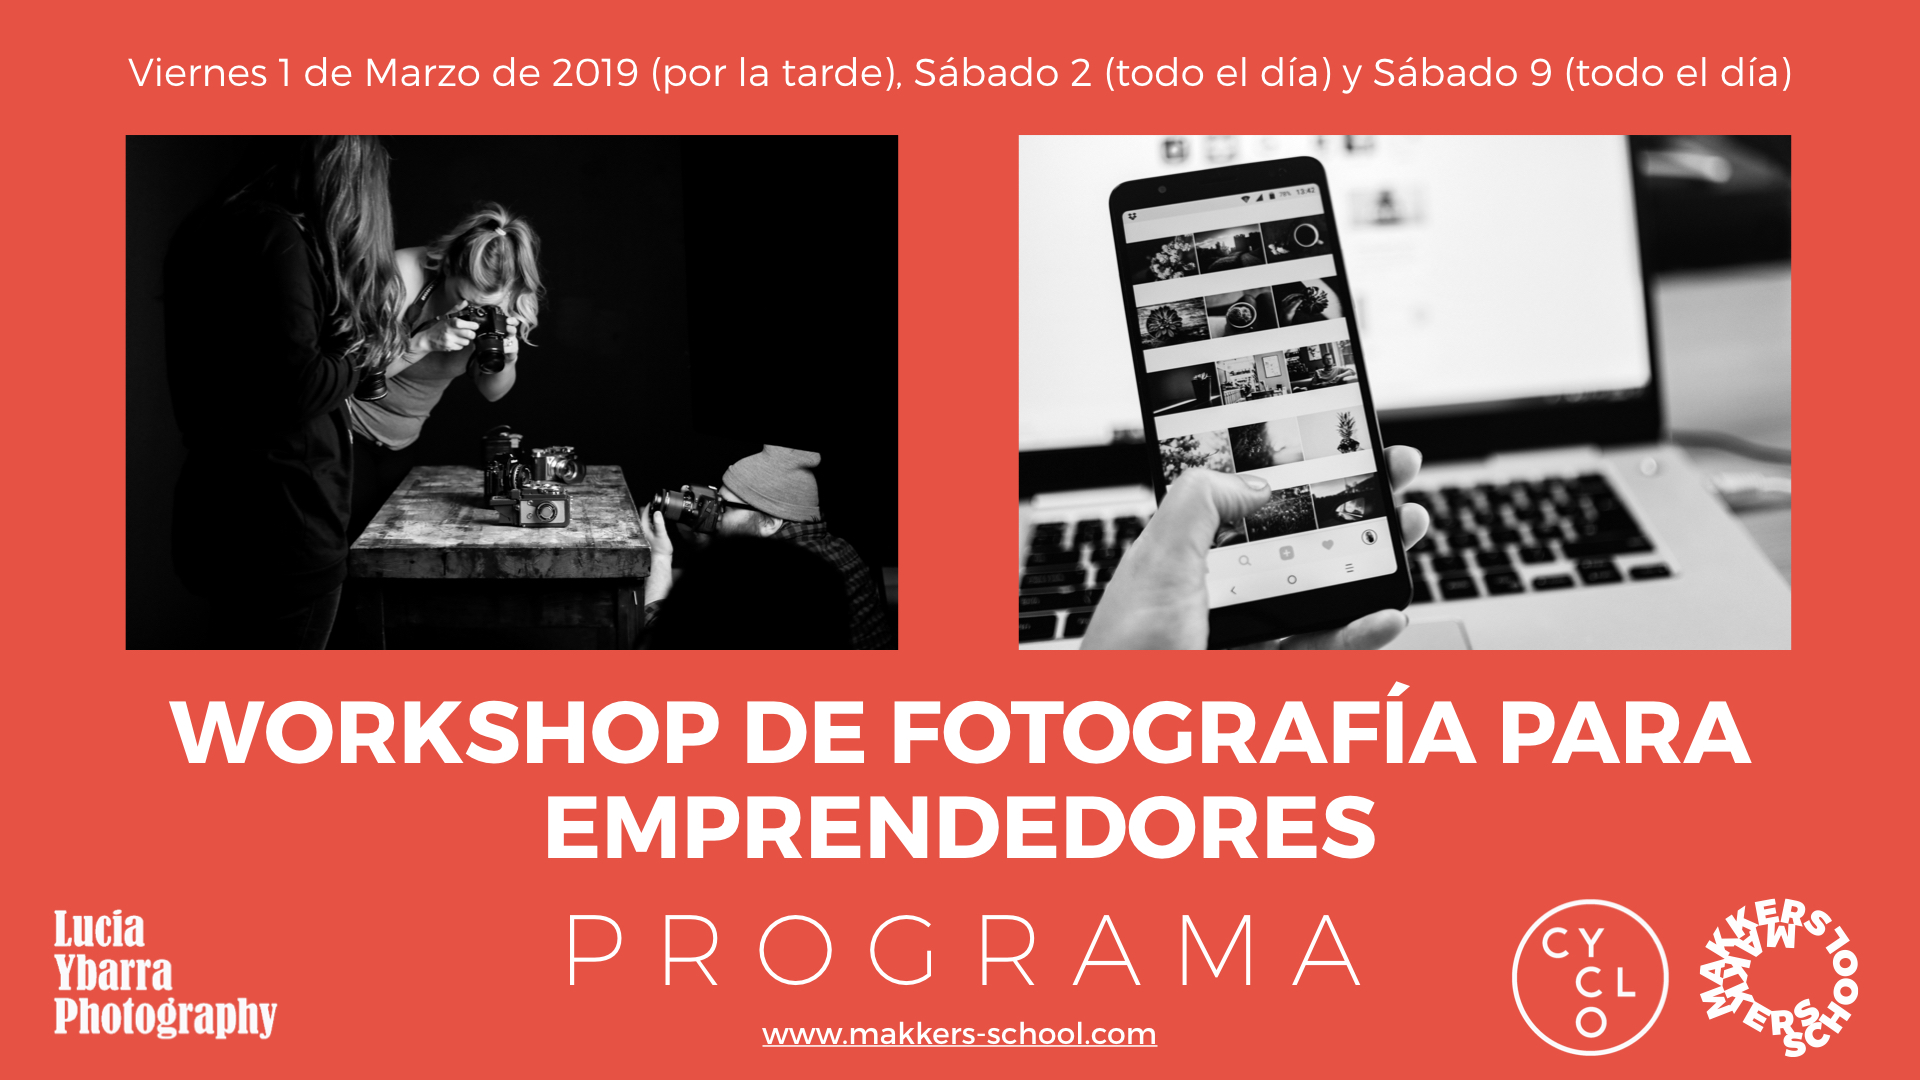 Workshop de Fotografía-Programa v1.001.jpeg